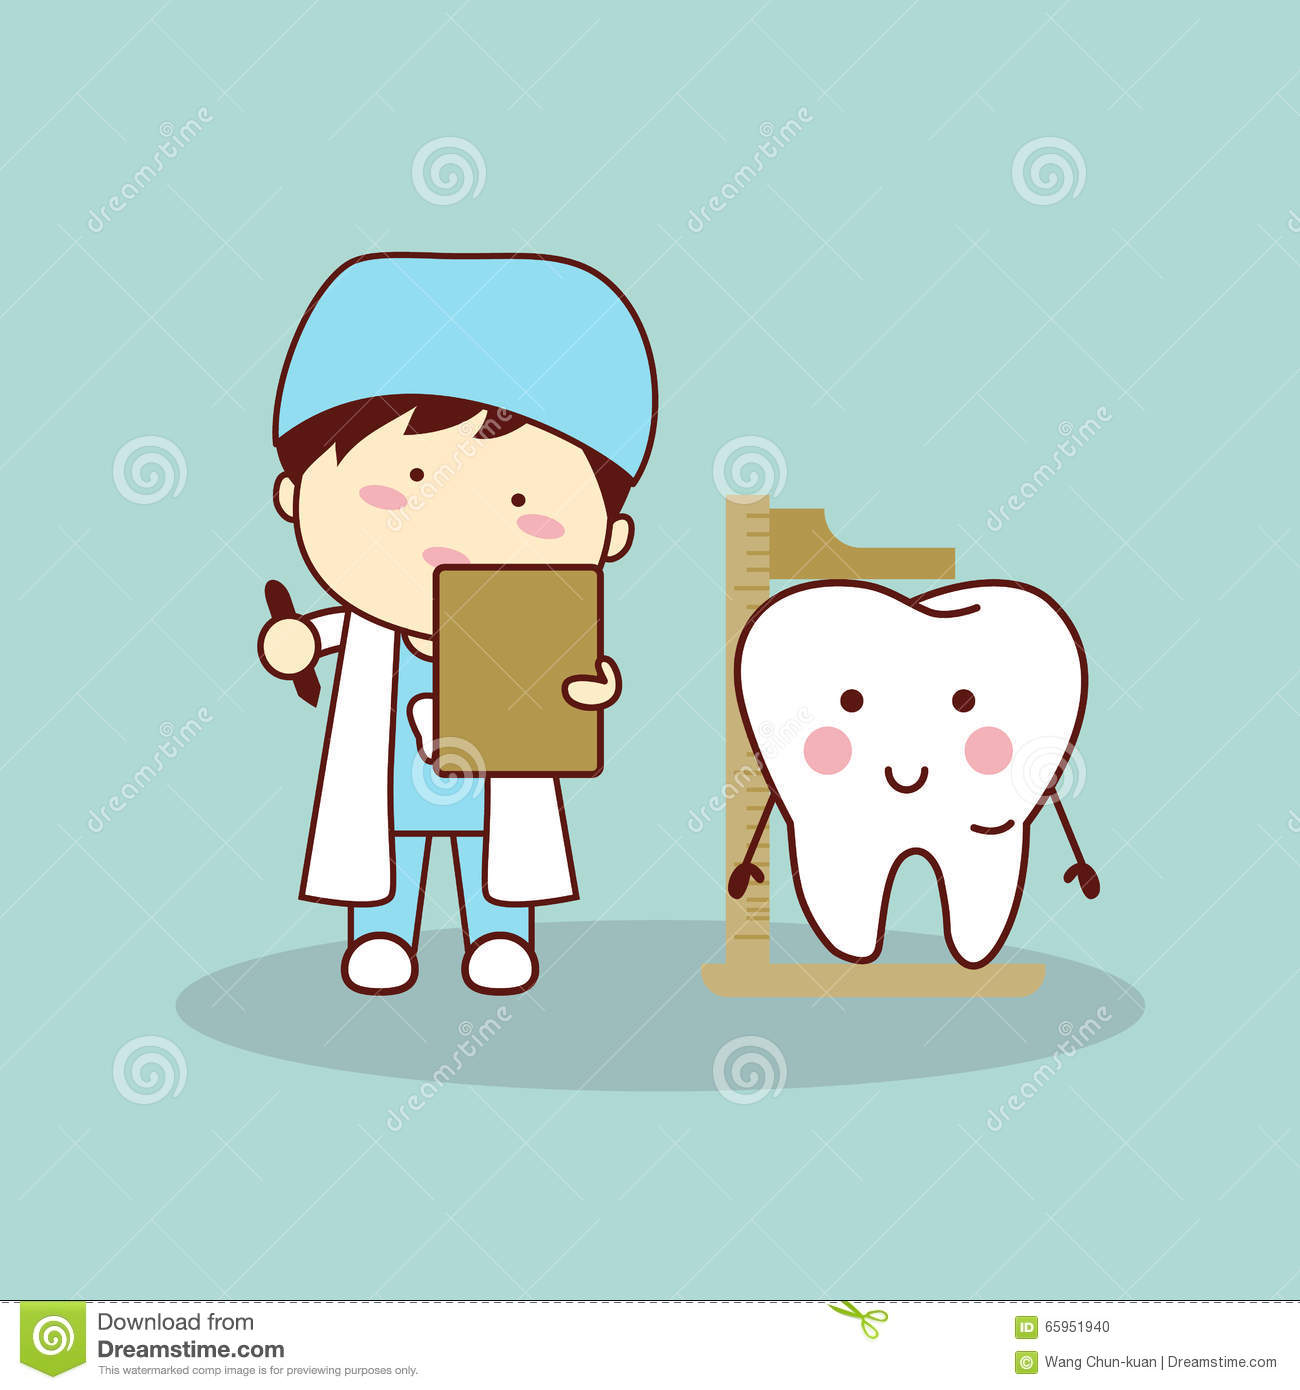 cartoon-dentist-measuring-tooth-height-teeth-growth-great-health-dental-care-concept-65951940.jpg